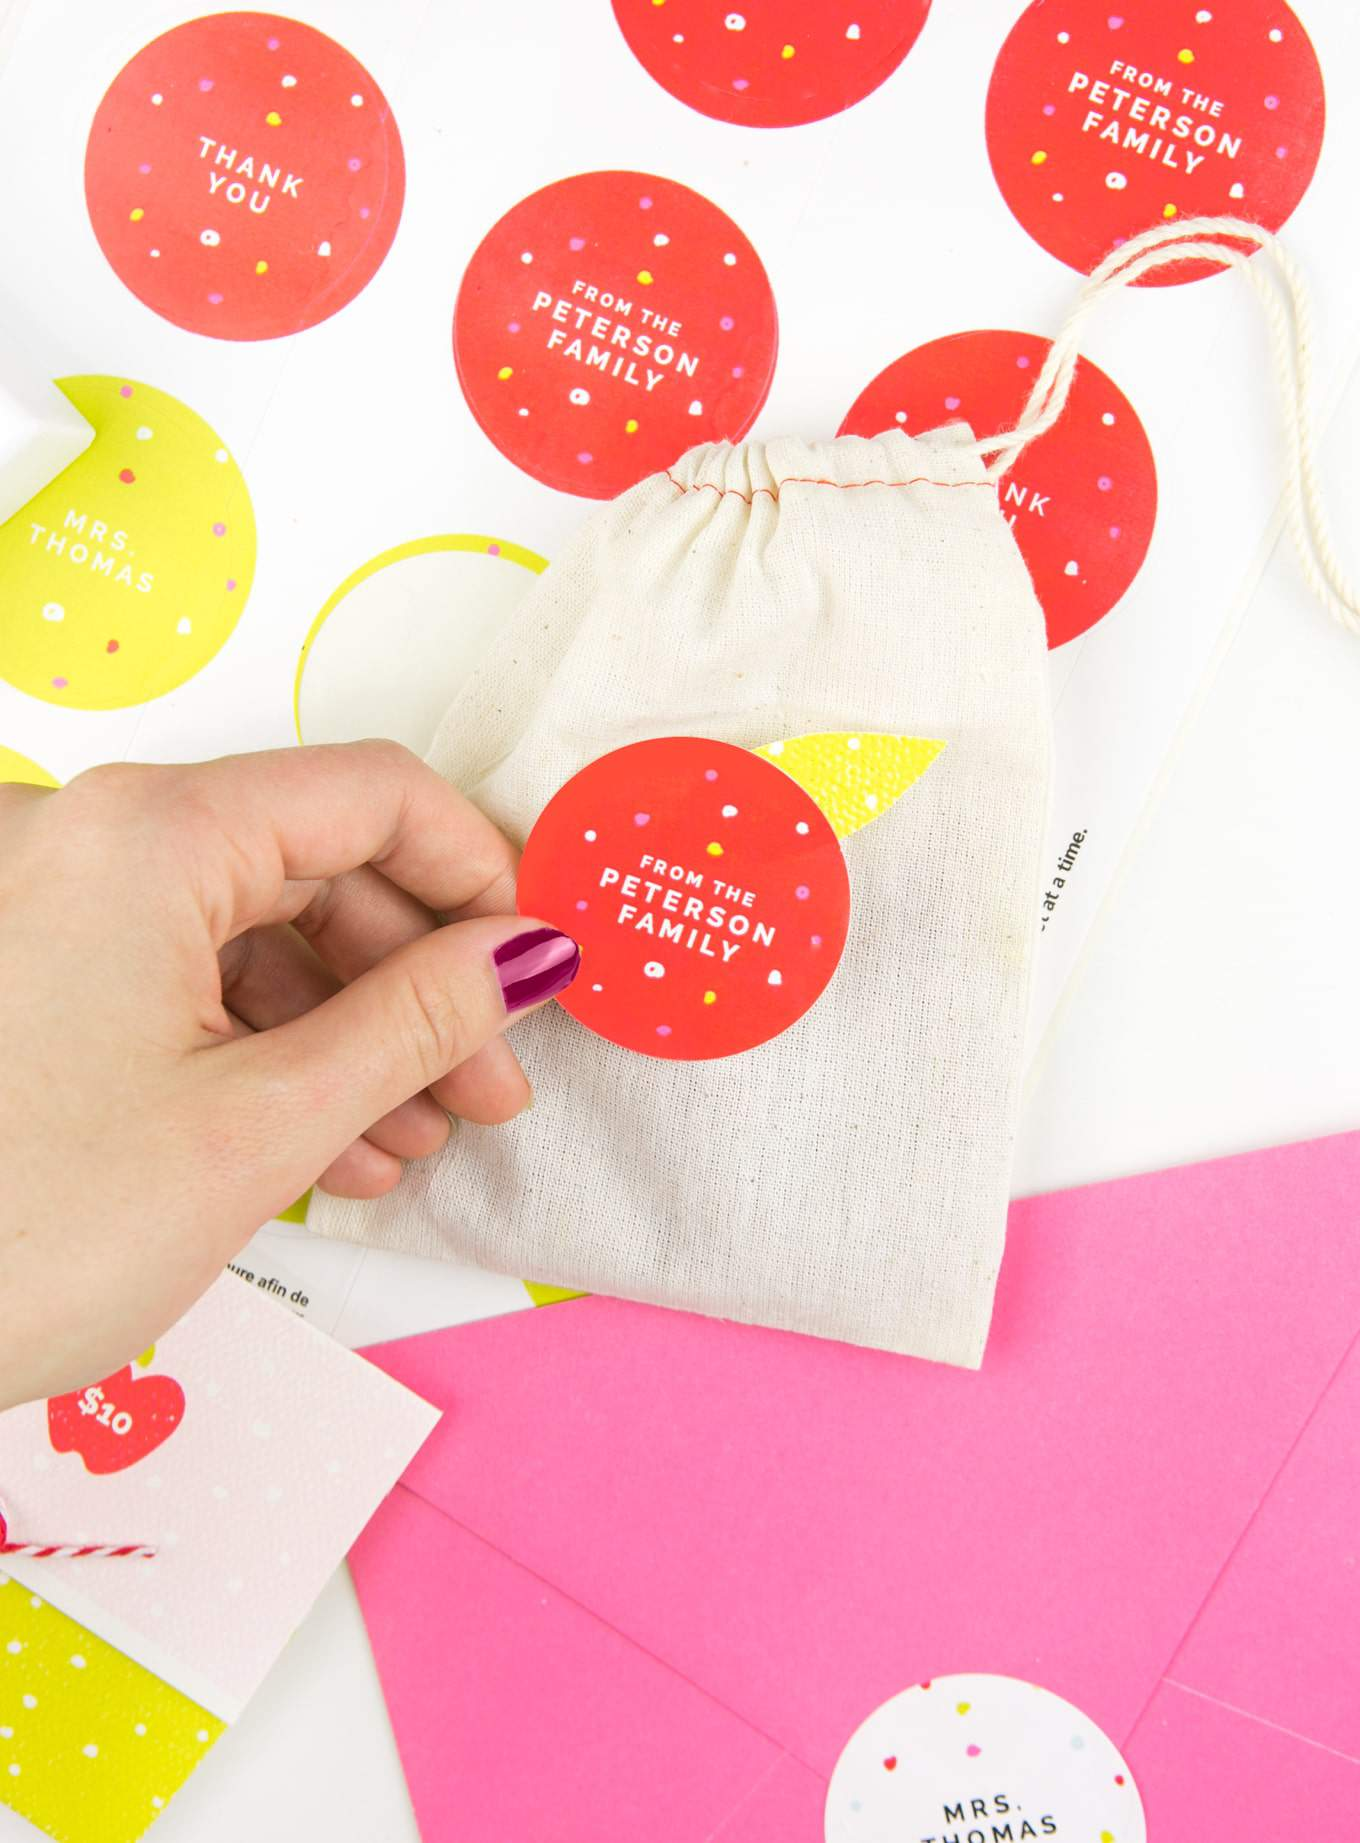 Make adorable teacher gifts with these 3 free printable teacher gift ideas from #Avery and Design Eat Repeat! Not only great for back to school season, but versatile designs to keep on hand for teacher appreciation gifts, thank you gifts, or end of the year gifts! #teachergift #printables #averyproducts